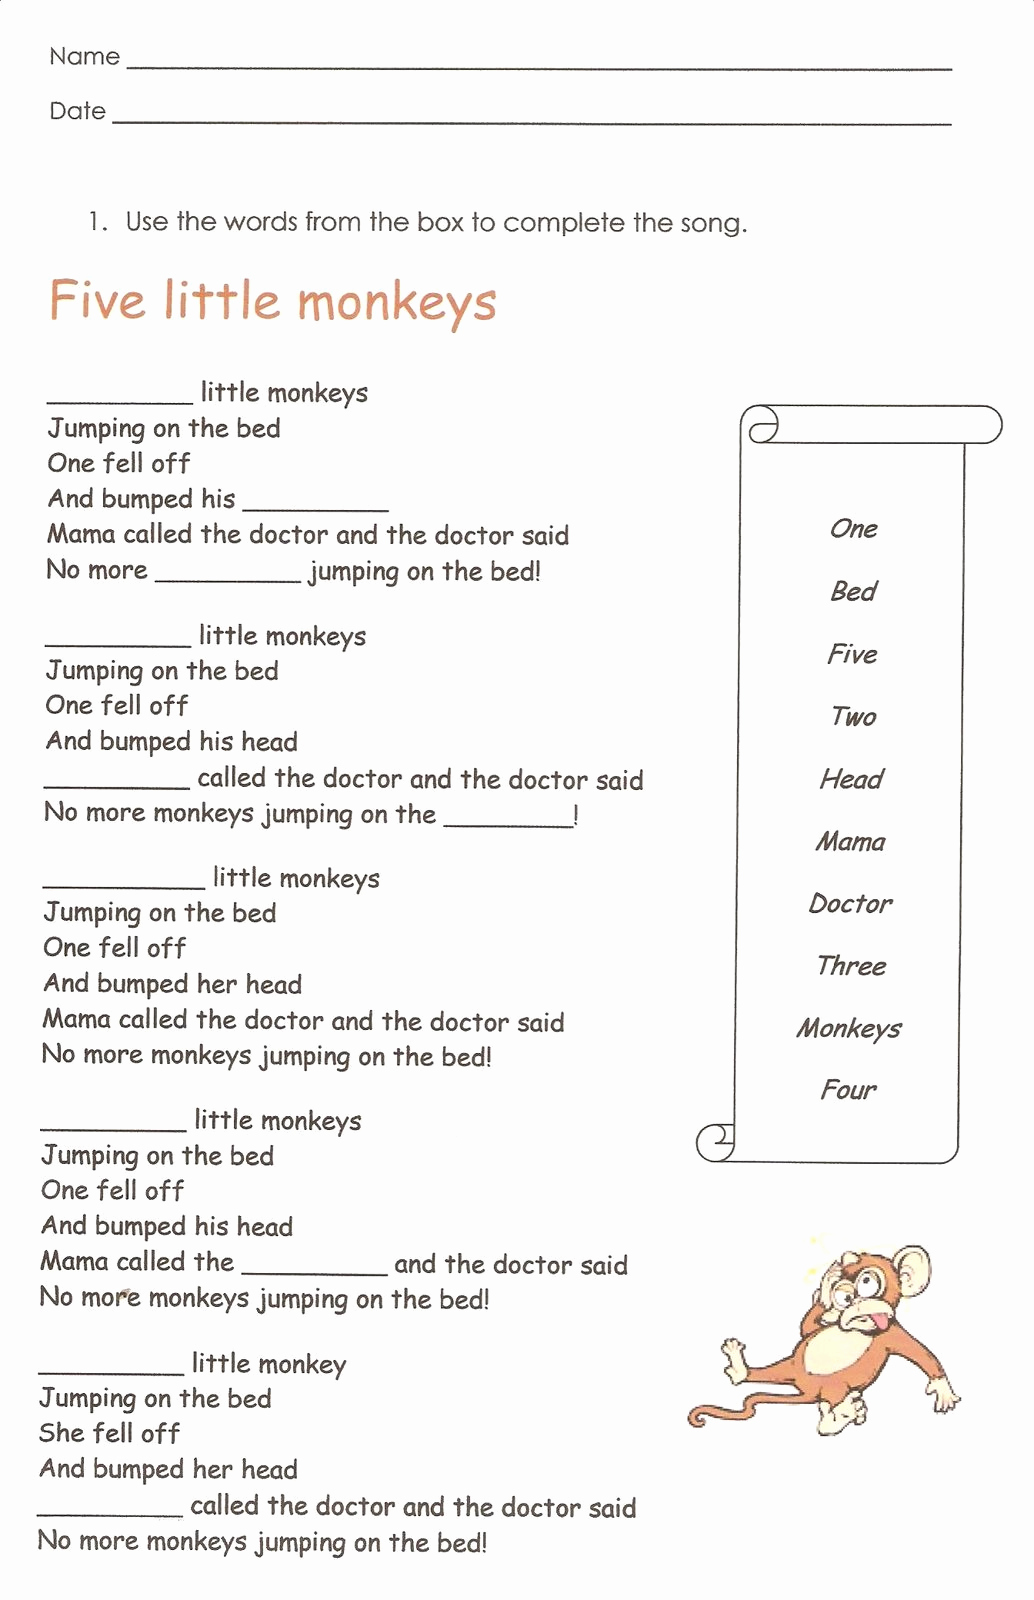 Worksheets for First Grade Writing Best Of First Grade English Worksheets to Print